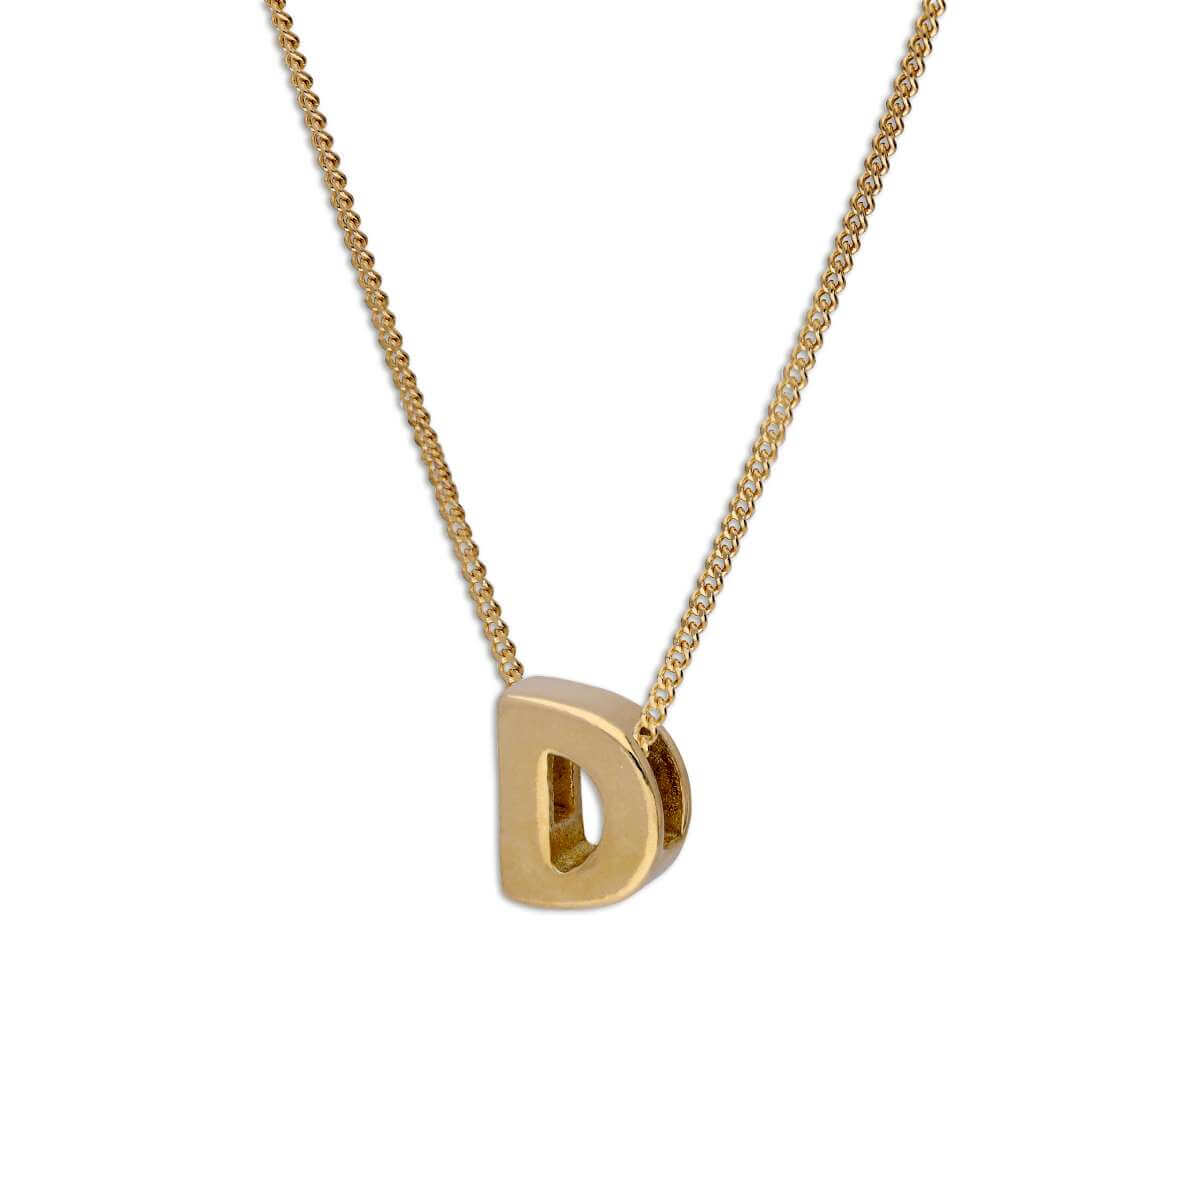 Gold Plated Sterling Silver Threader Letter D Bead Necklace 16 - 22 Inches